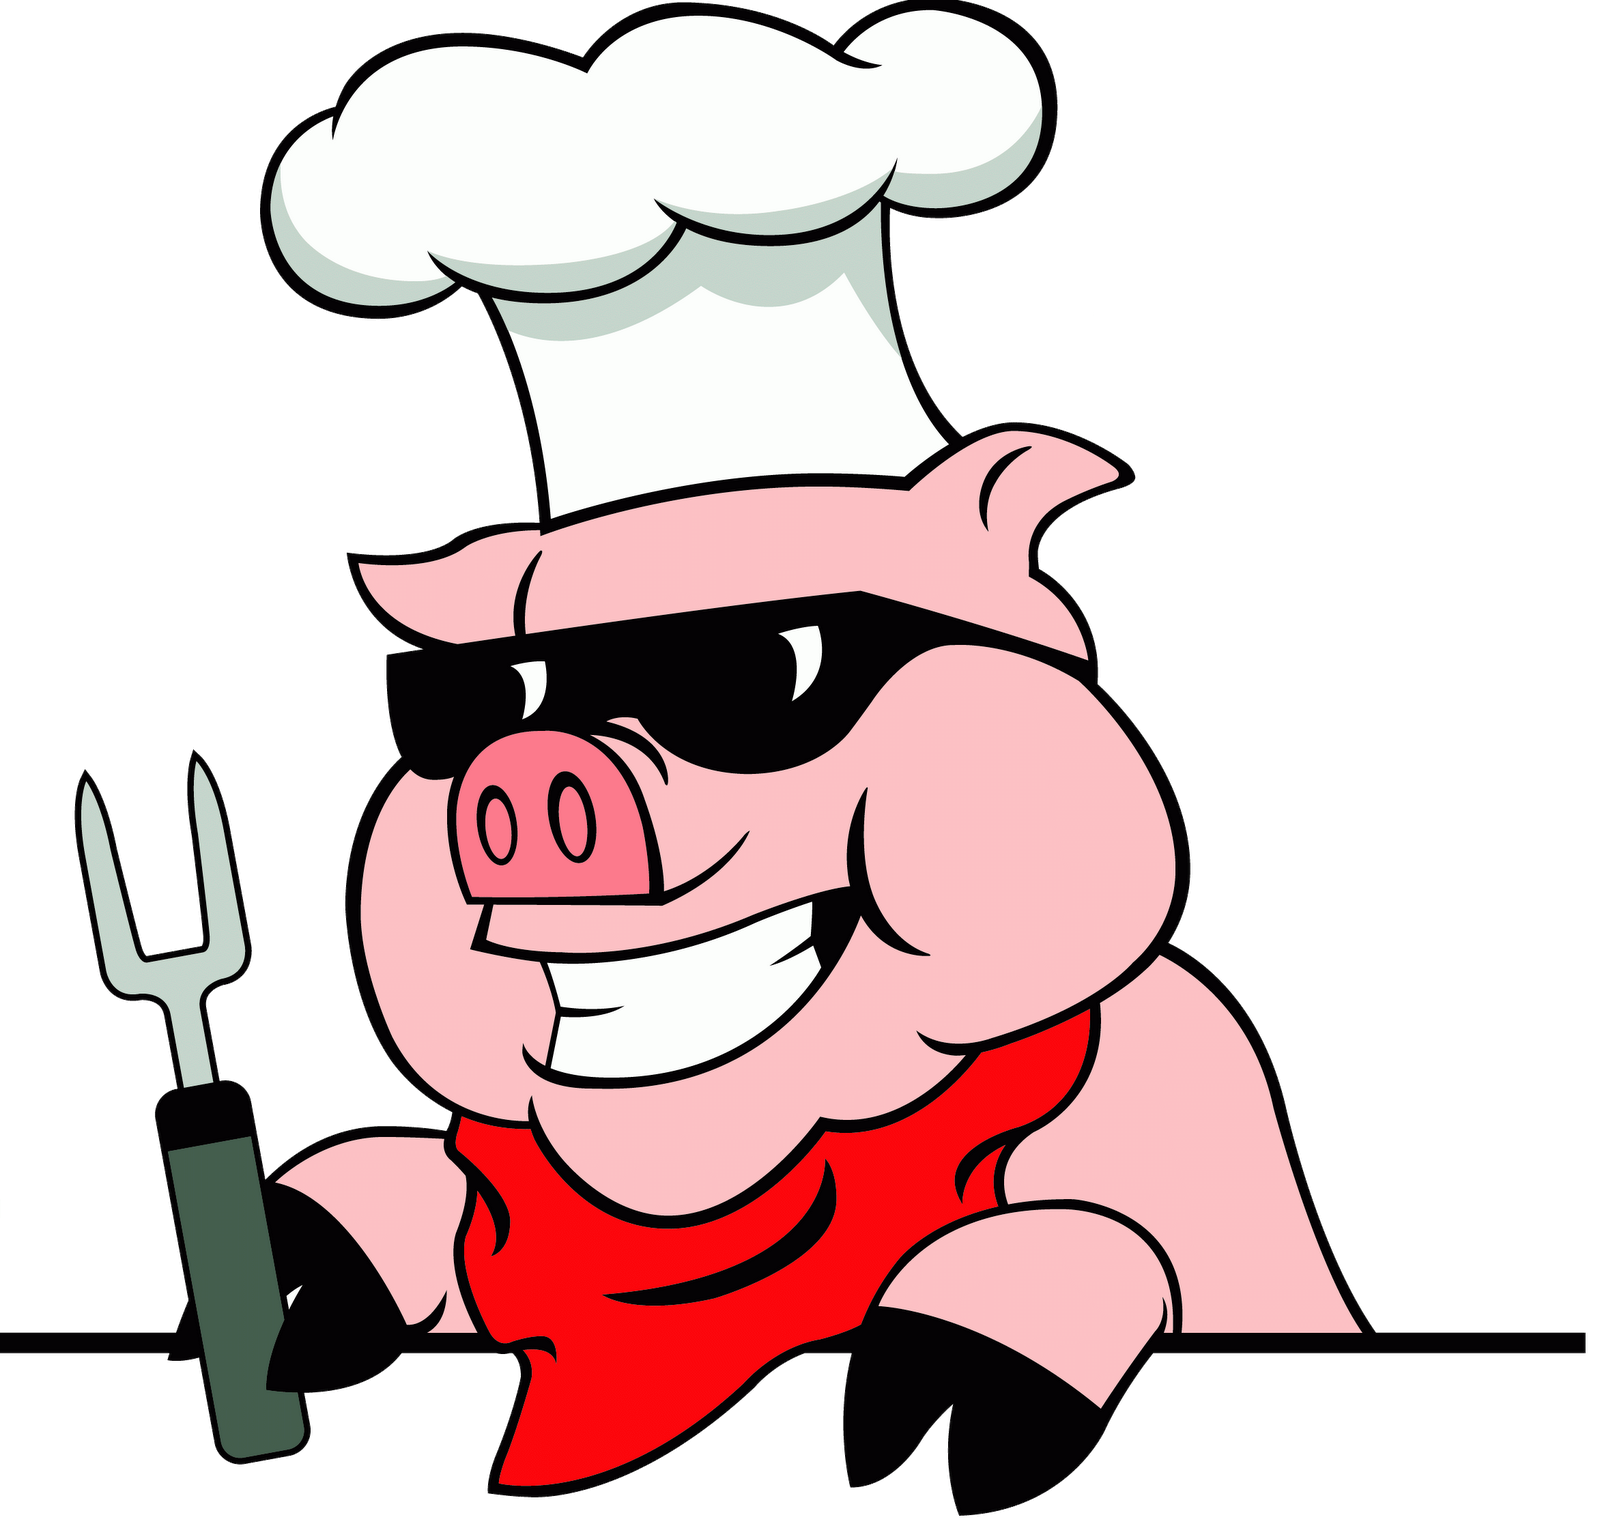 Barbecue clipart red grill. Free funny fundraiser cliparts